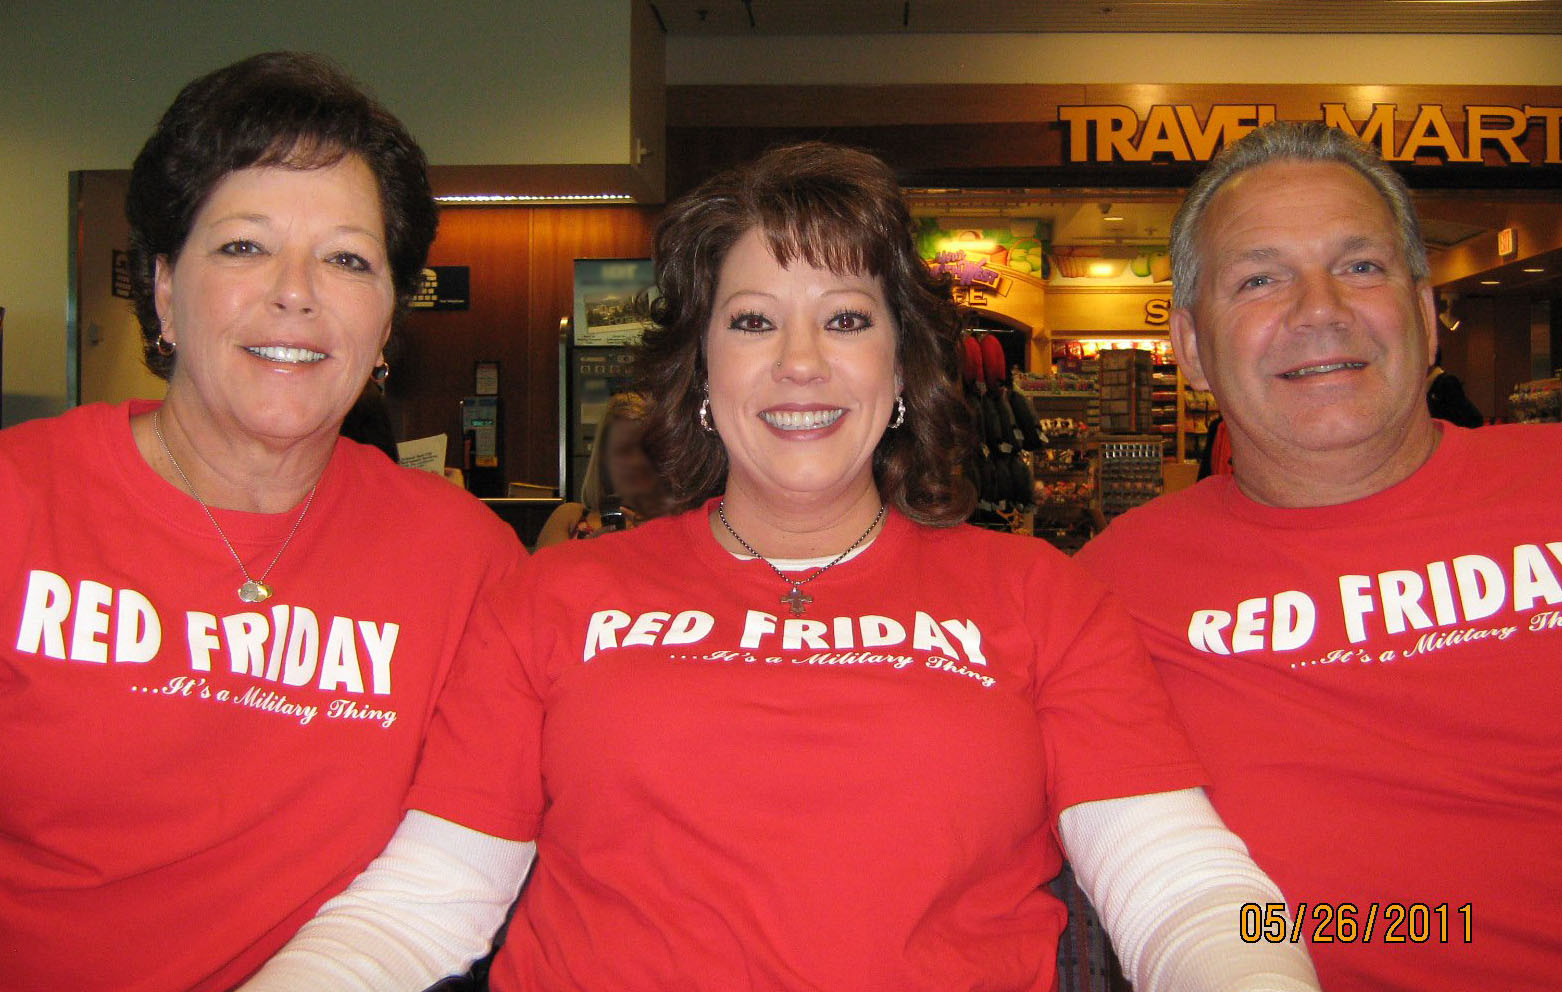 Support Our Troops Wear Red on Fridays Wear Red Friday Shirt